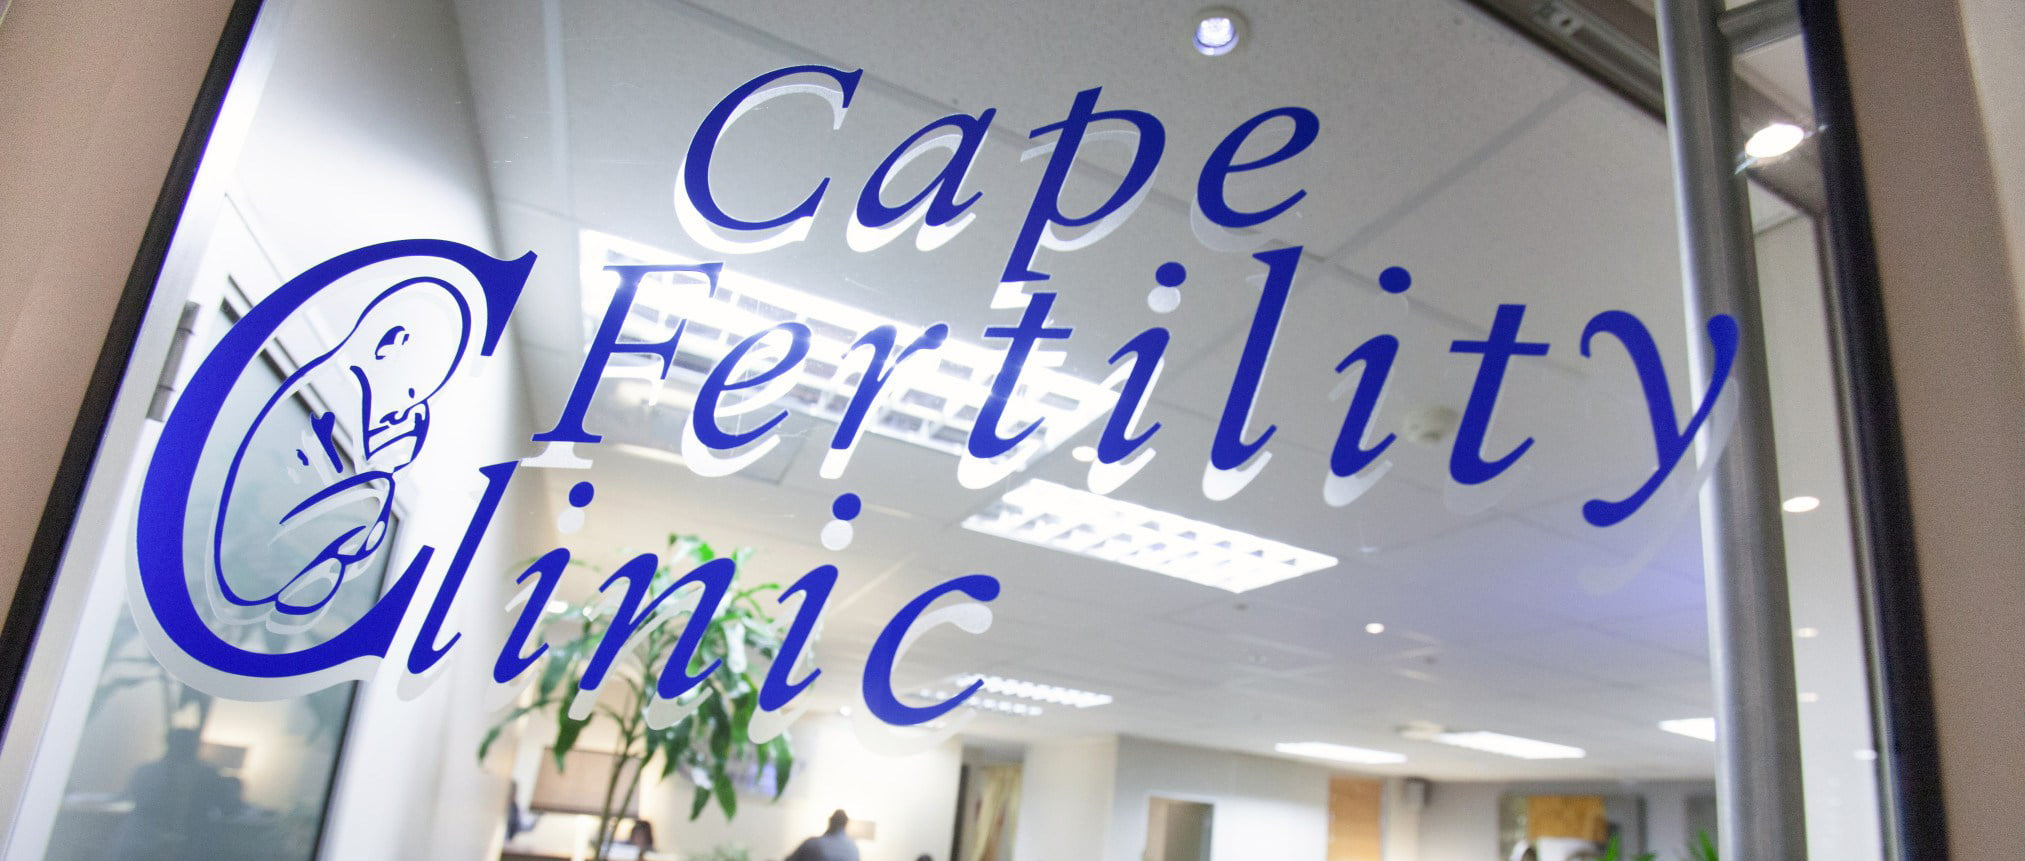 Cape-Fertility-Clinic-entrée